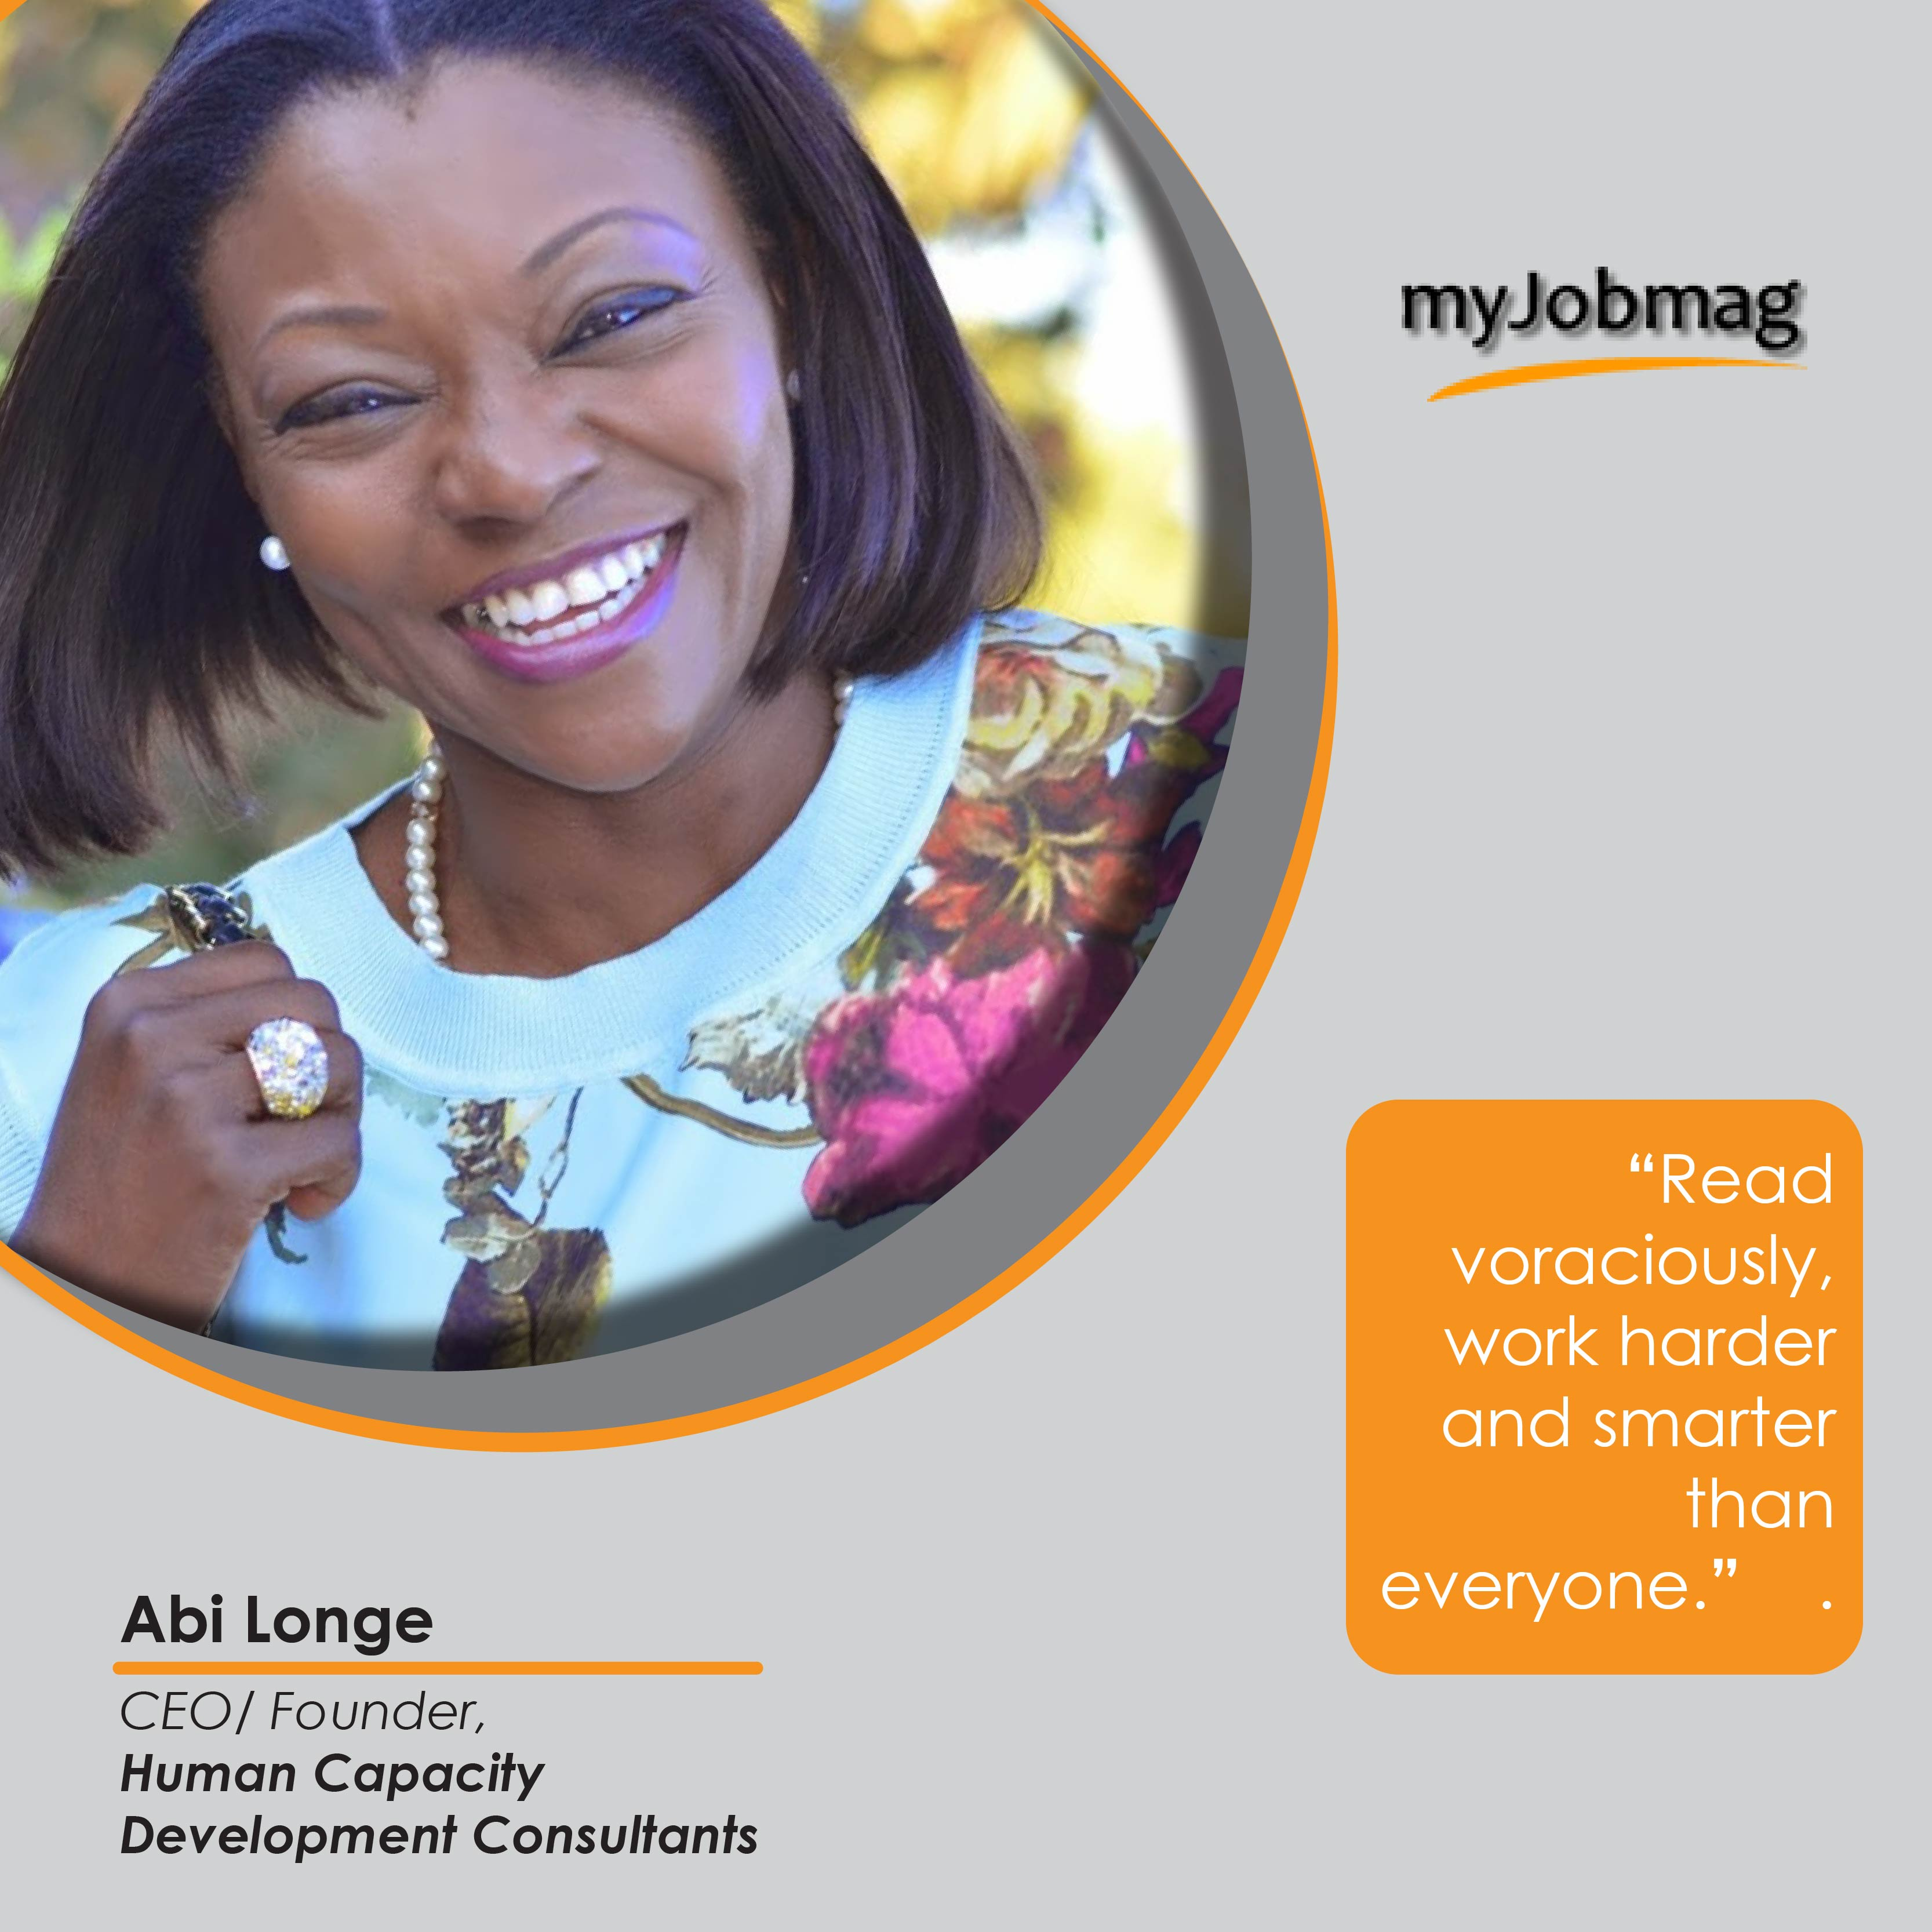 Abi Longe career advice MyJobMag